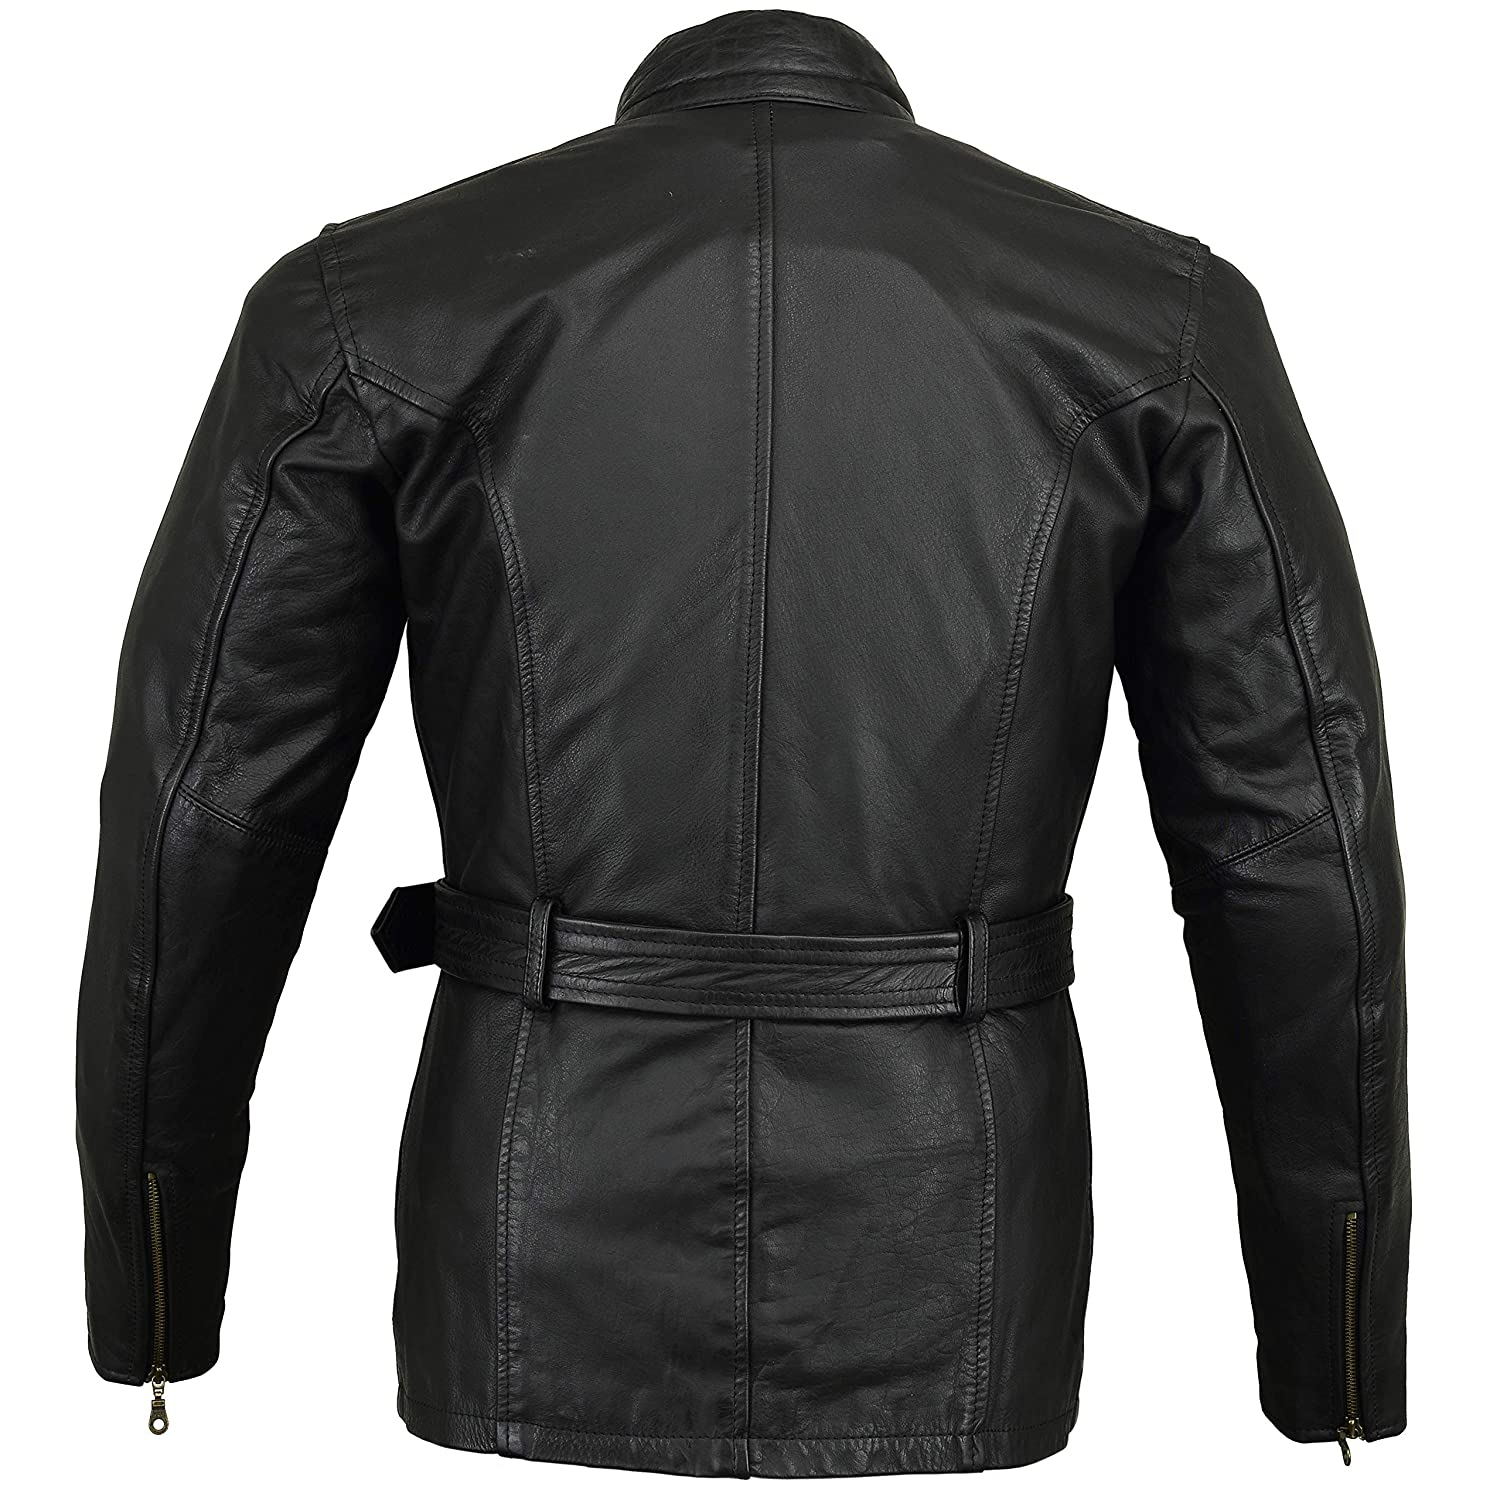 Coats & Jackets Discreet Leather Motorbike Motorcycle Jacket Short Biker Brown Distressed Ce Armoured Buy Now Parts & Accessories